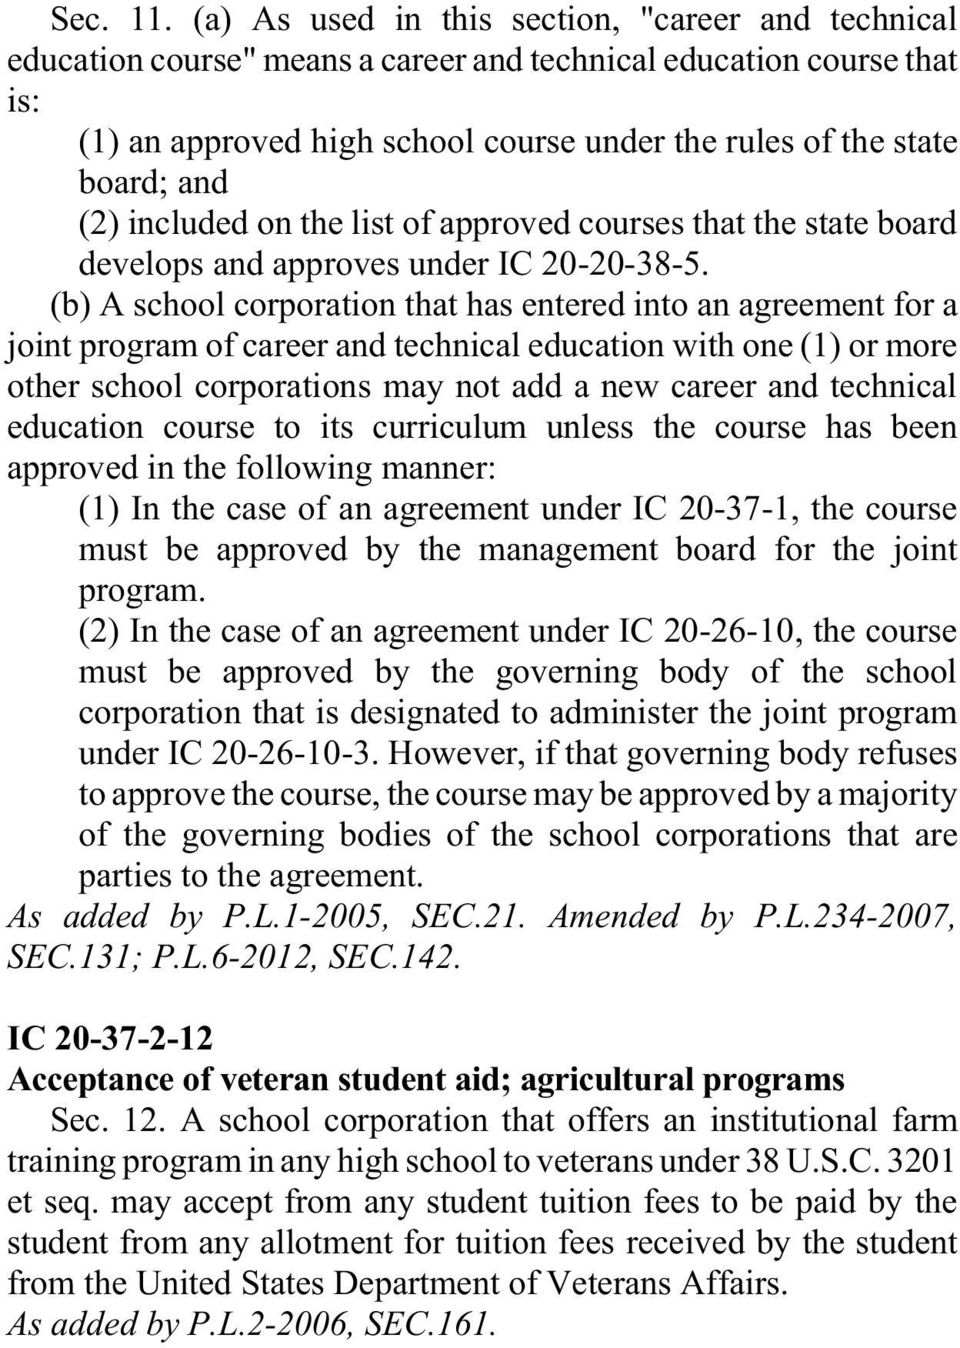 (2) included on the list of approved courses that the state board develops and approves under IC 20-20-38-5.